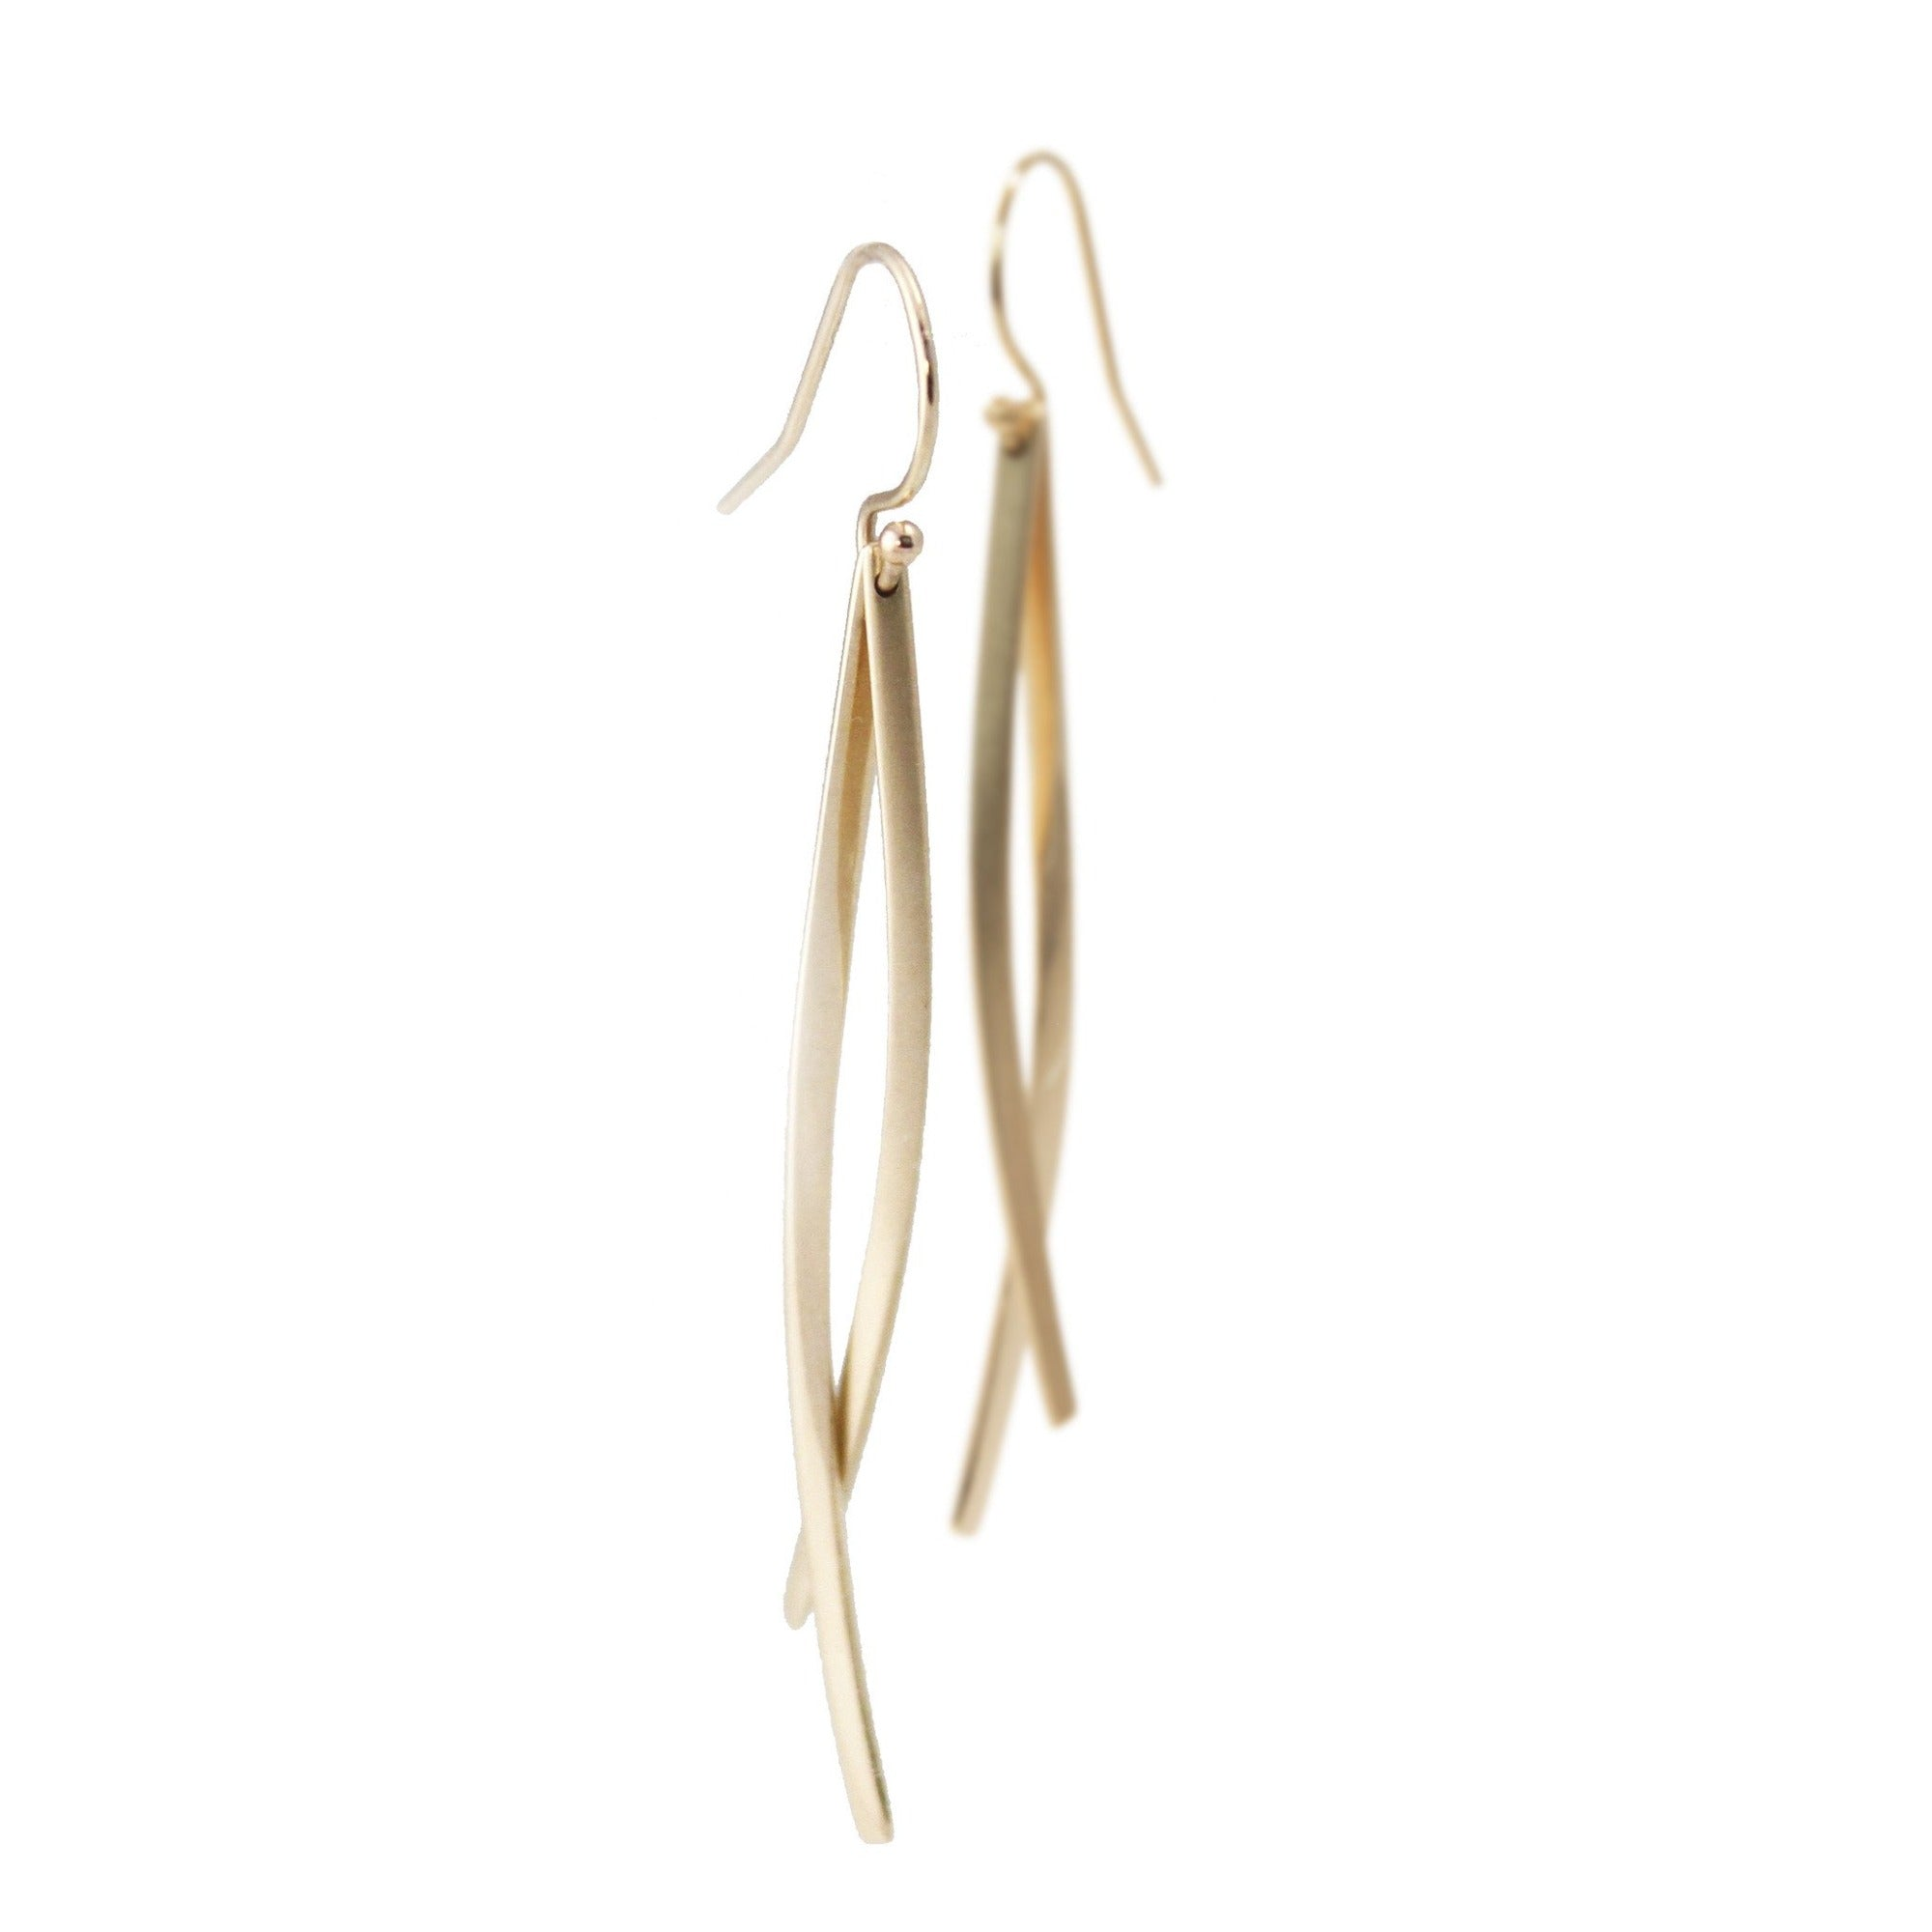 14k yellow gold double sliver earrings